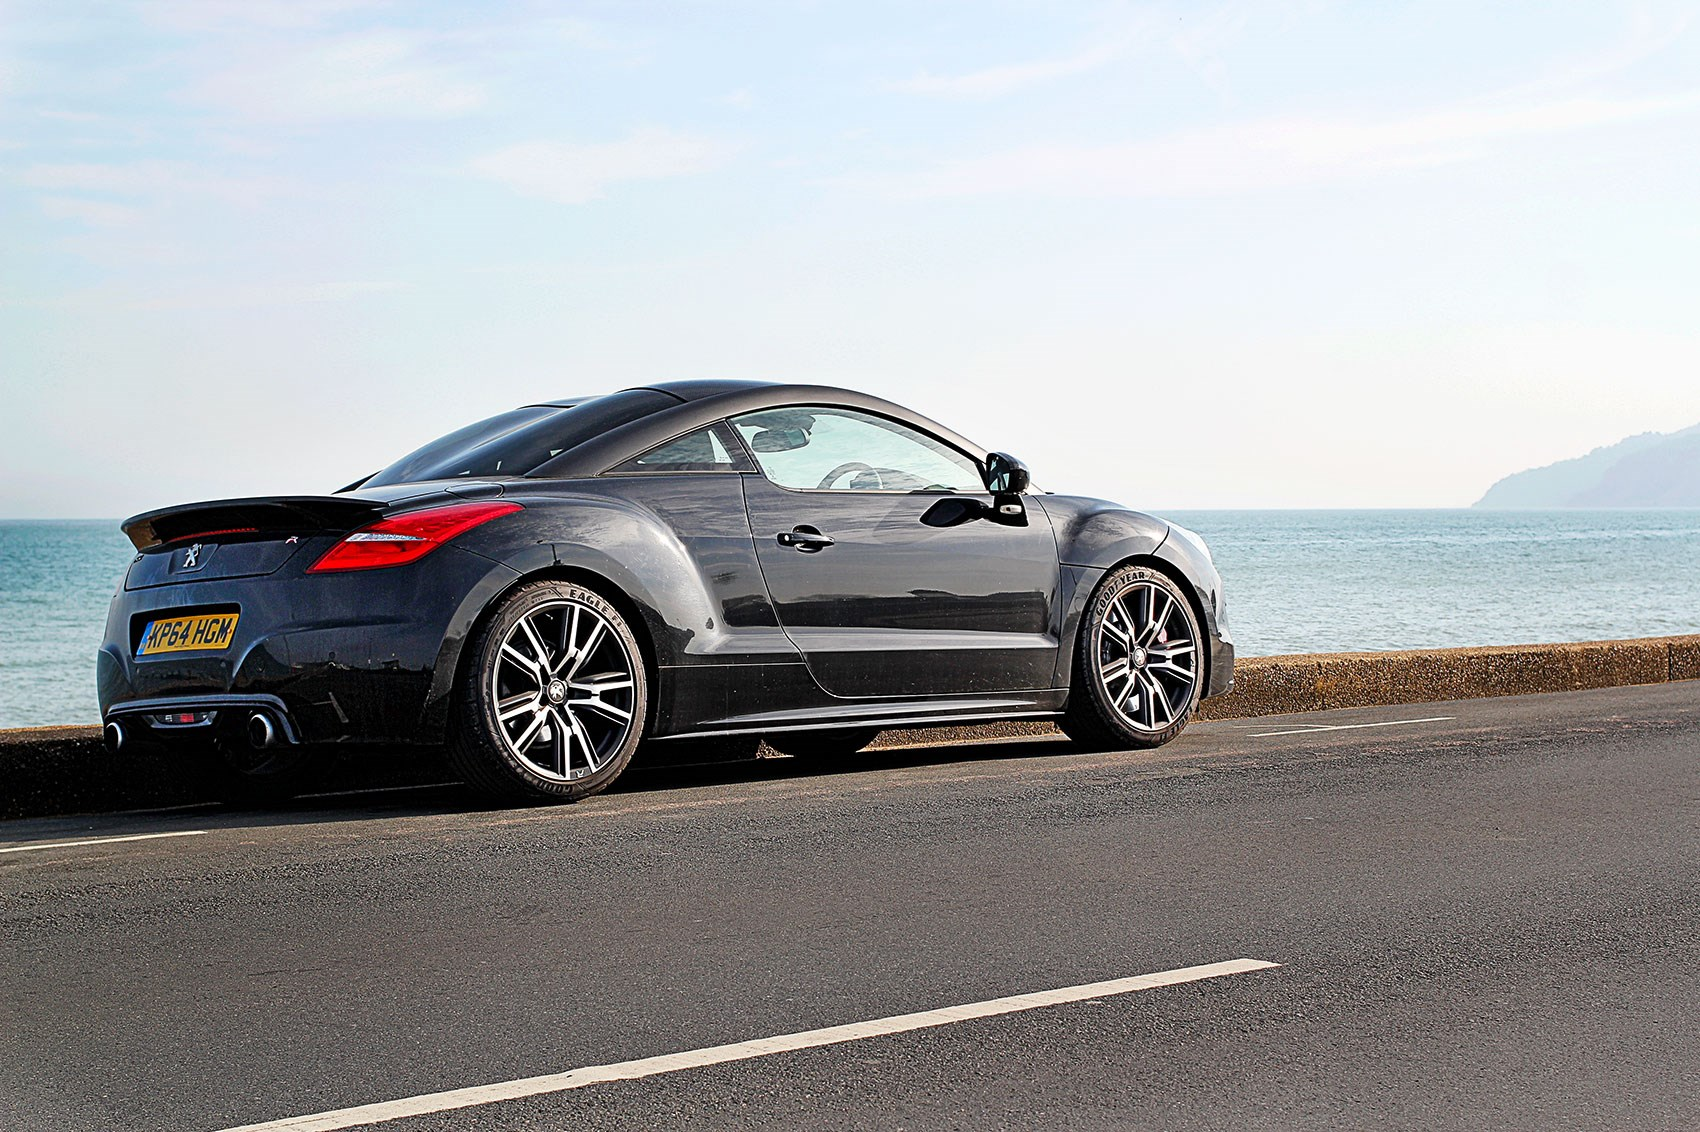 peugeot rcz r 2015 long term test review by car magazine. Black Bedroom Furniture Sets. Home Design Ideas